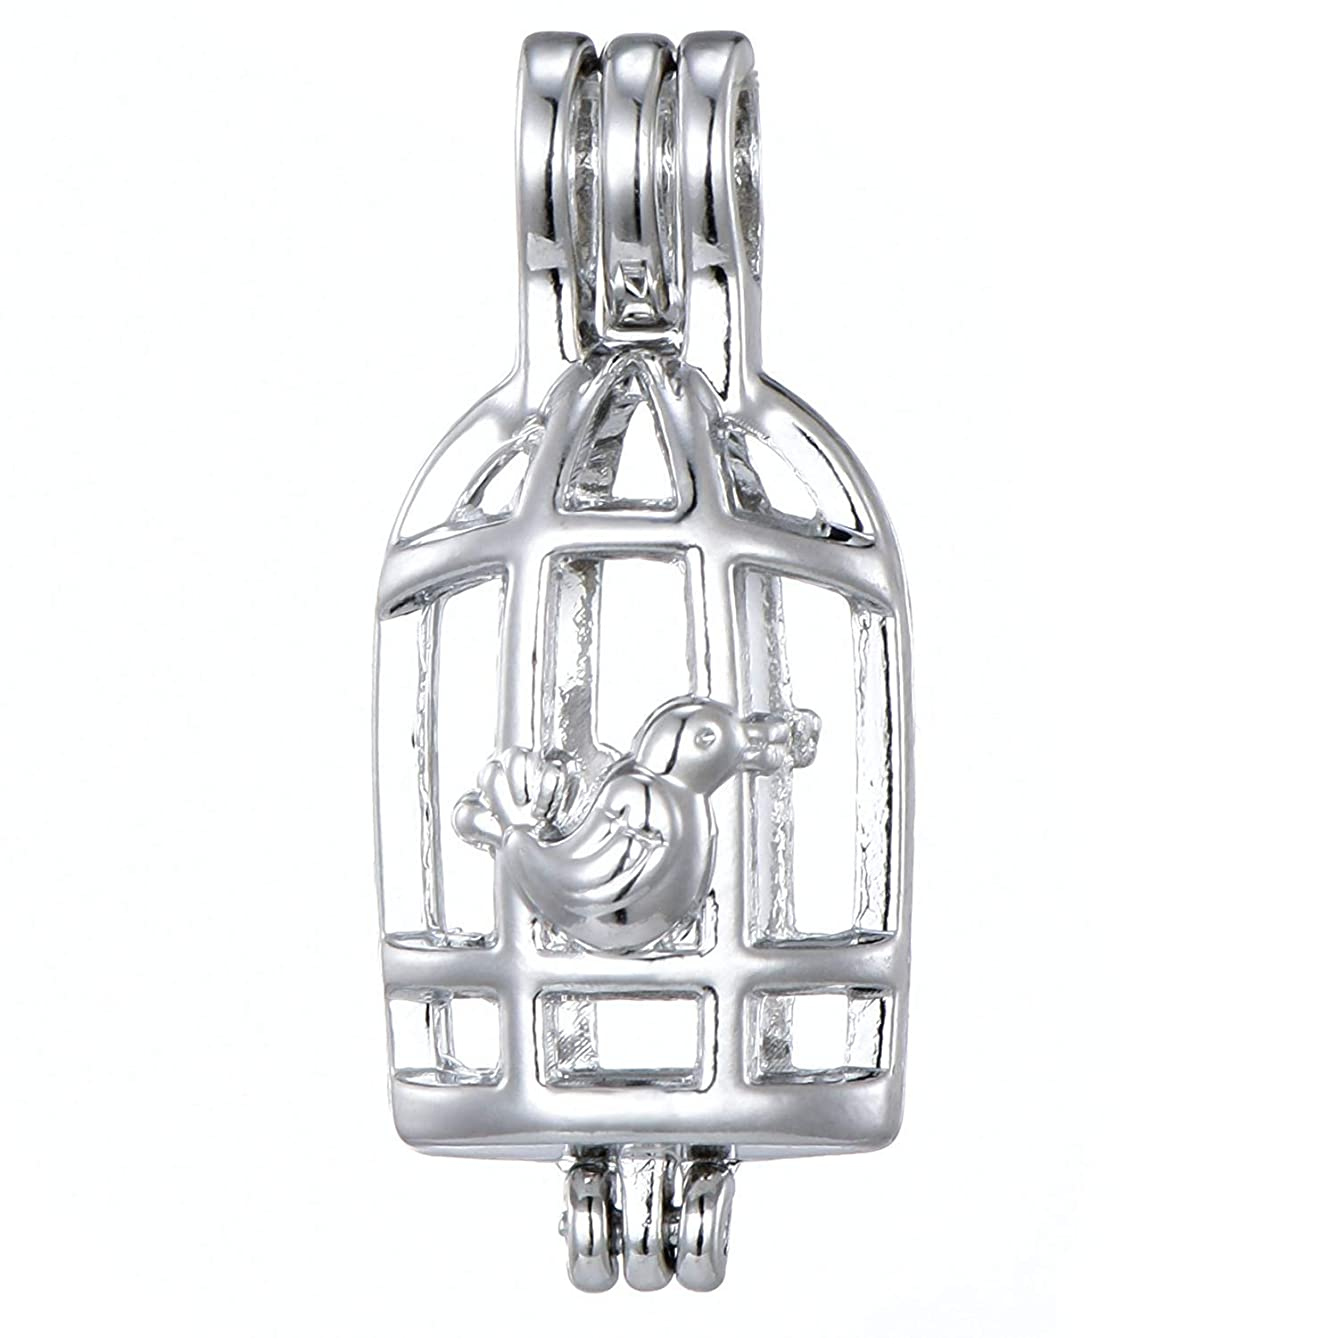 10pcs Birdcage Stainless Steel Tones Alloy Bead Cage Pendant Add Your Own Pearls Stones Perfume Essential Oils to Create a Scent Diffusing Locket Pendant Charms (A427)